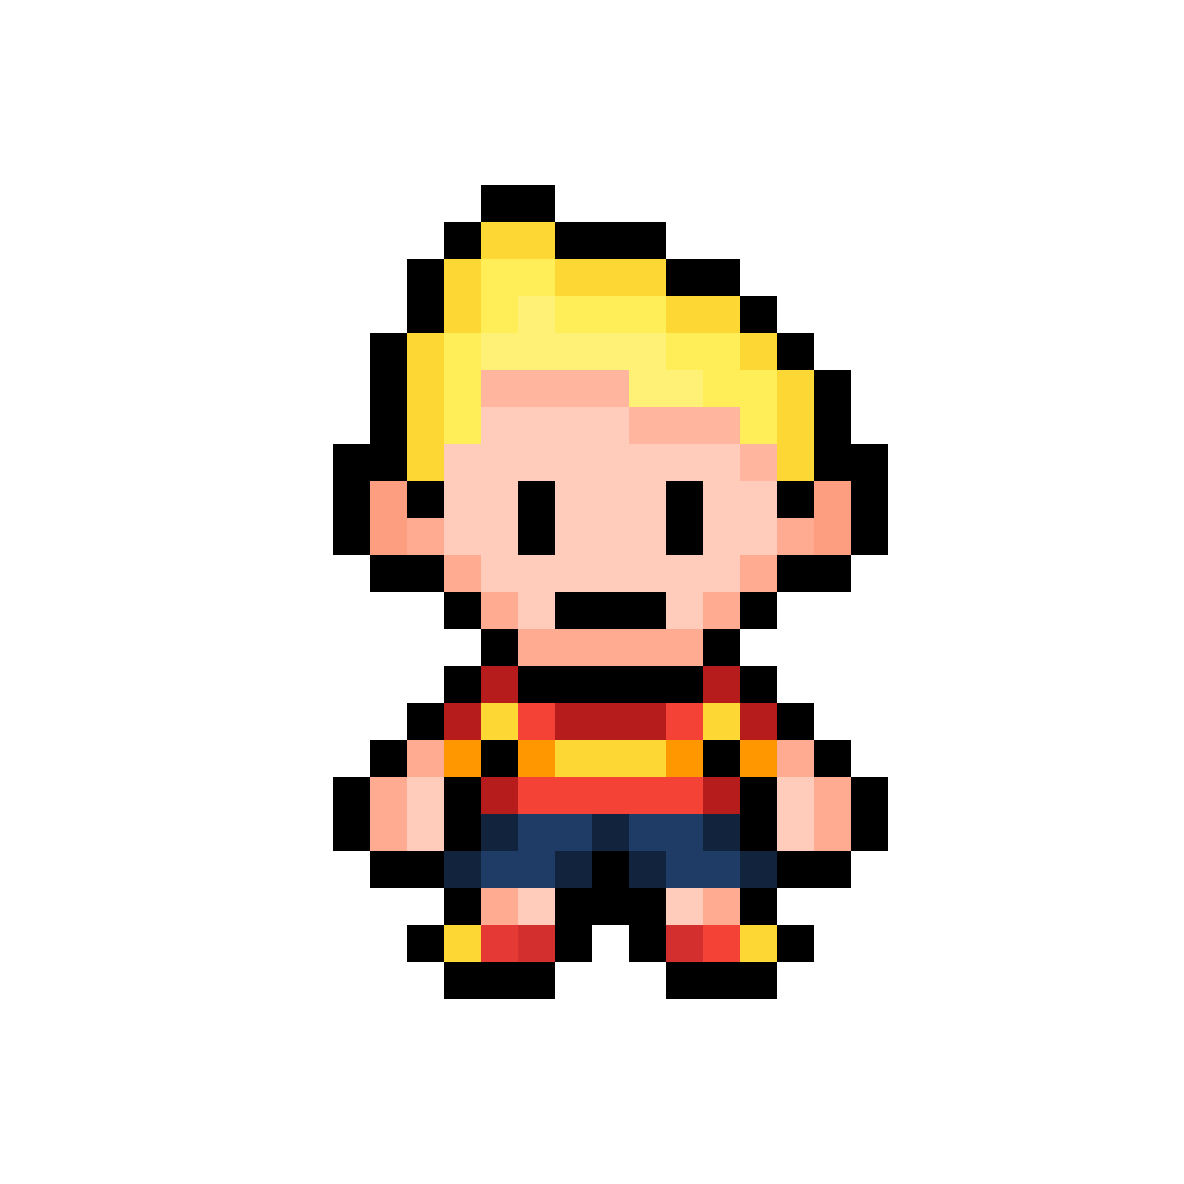 Pixilart - Mother 3: Lucas GBA remastered by Benji64